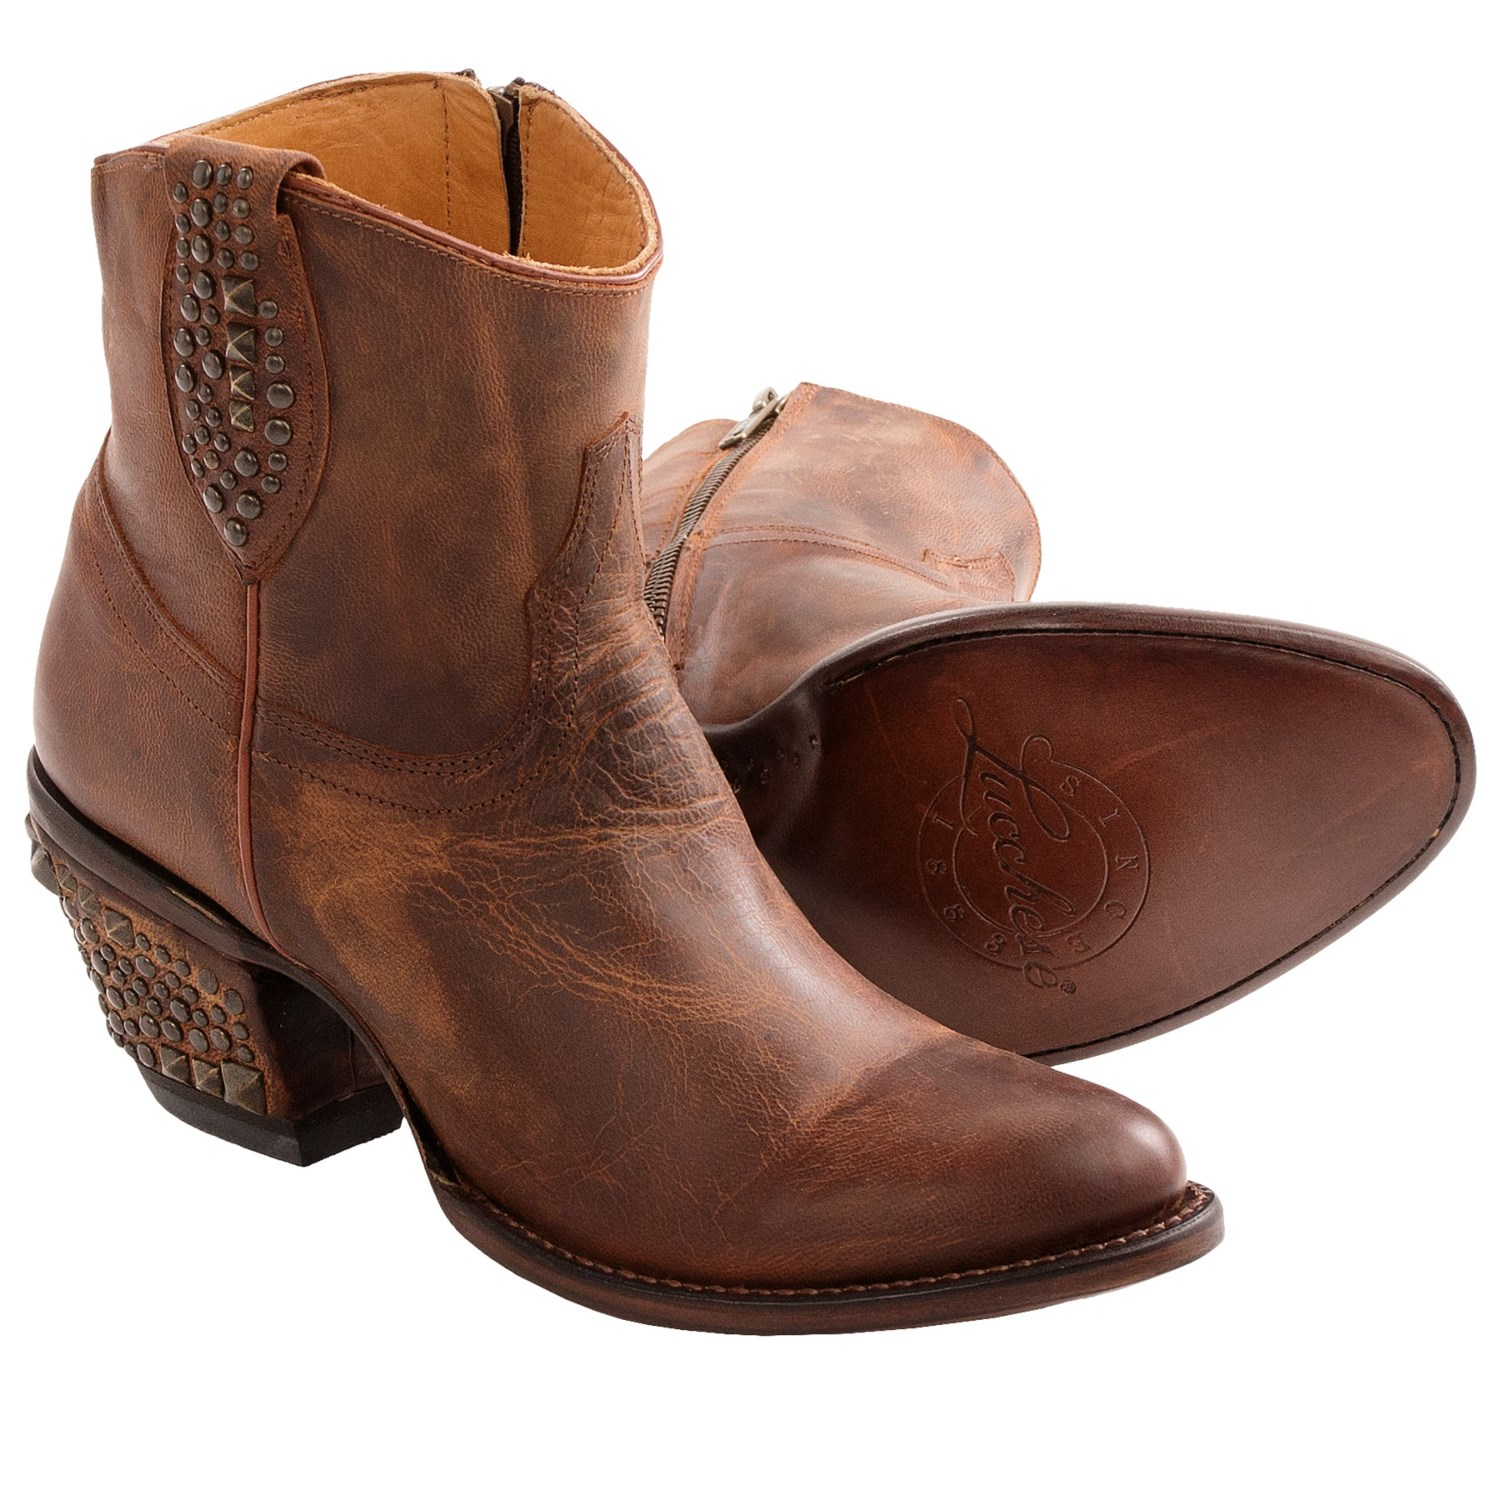 Simple Lucchese Janis Ankle Boots (For Women) 8816J